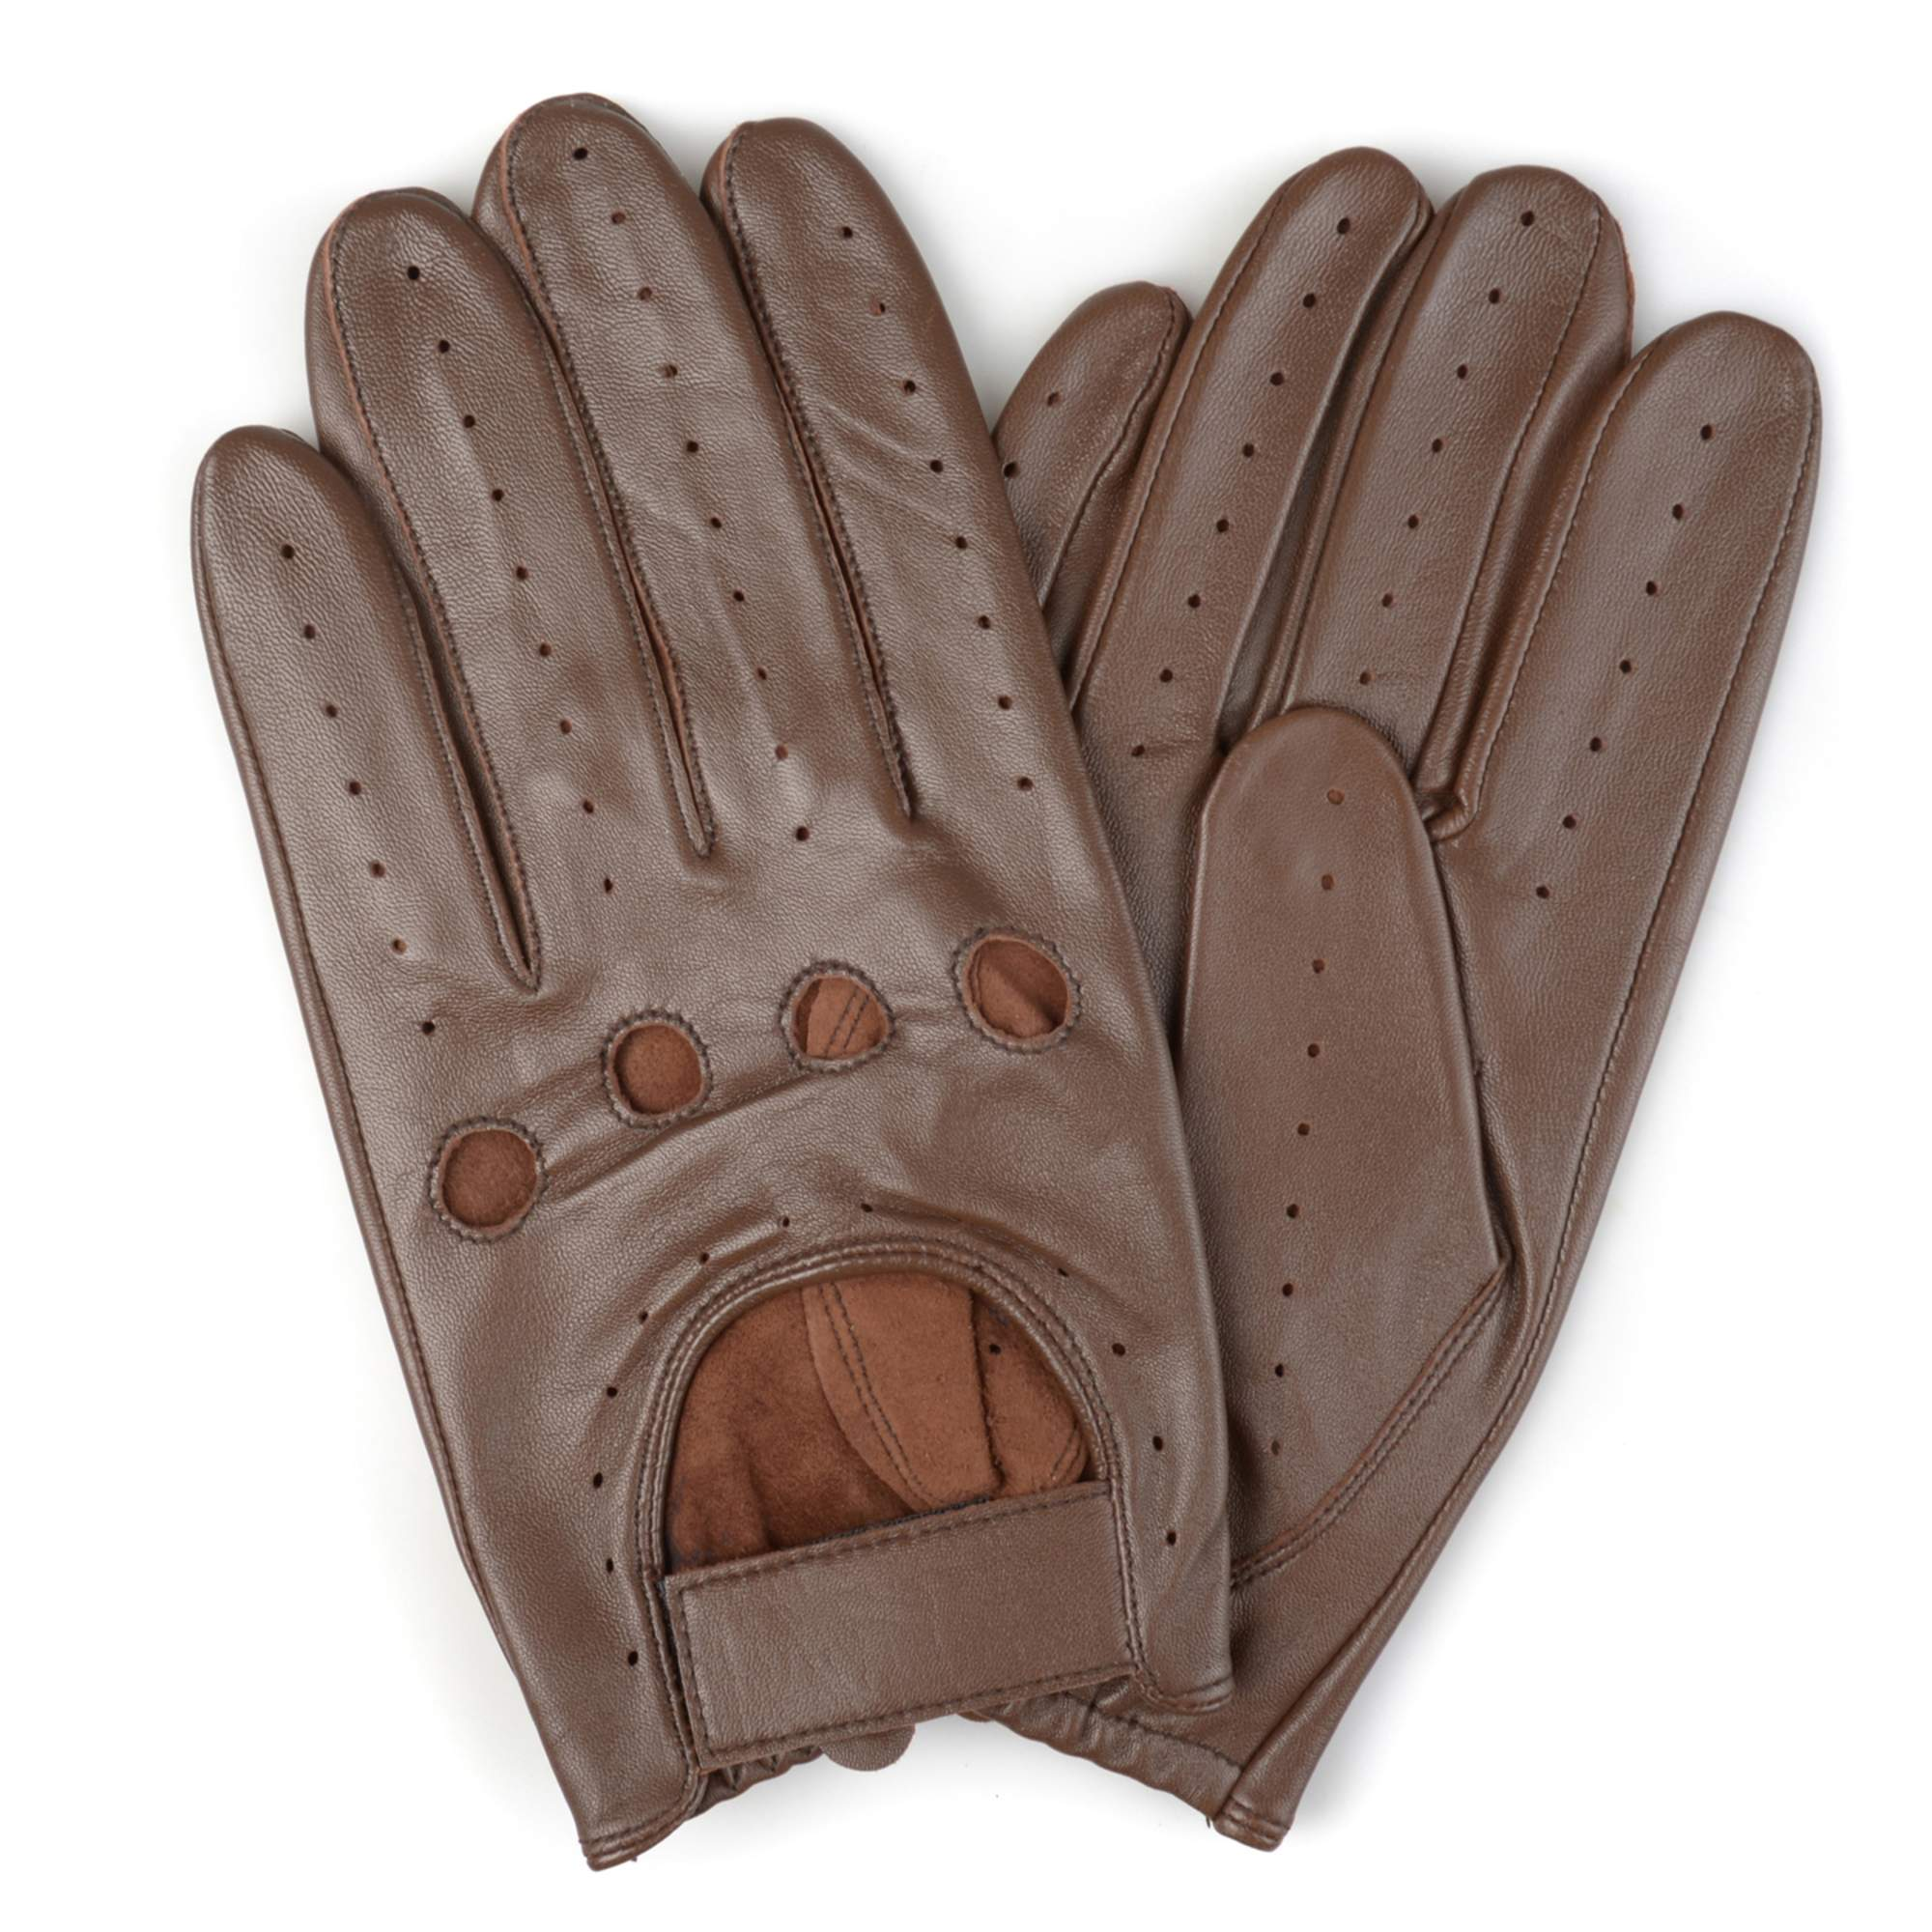 Territory Mens Genuine Leather Perforated Motorcyle Driving Gloves